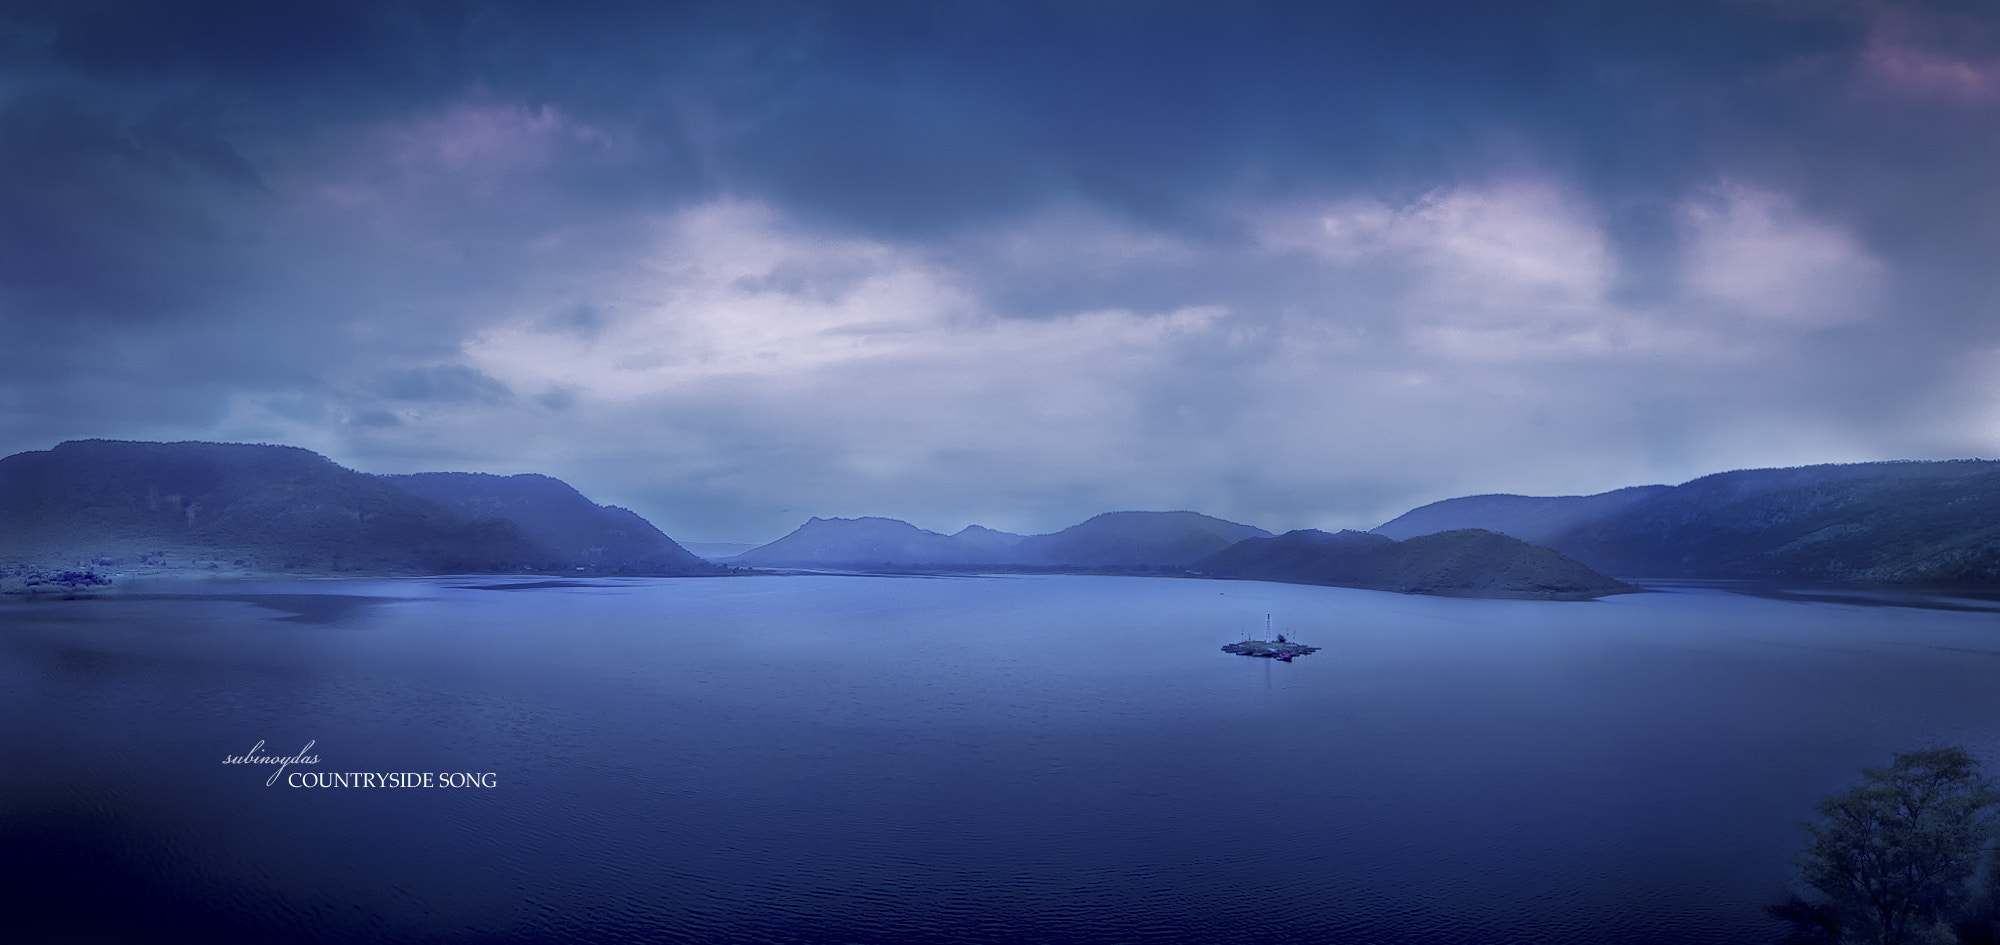 Photograph Siliserh Lake surrounded by lucy green mountains by Subinoy Das on 500px